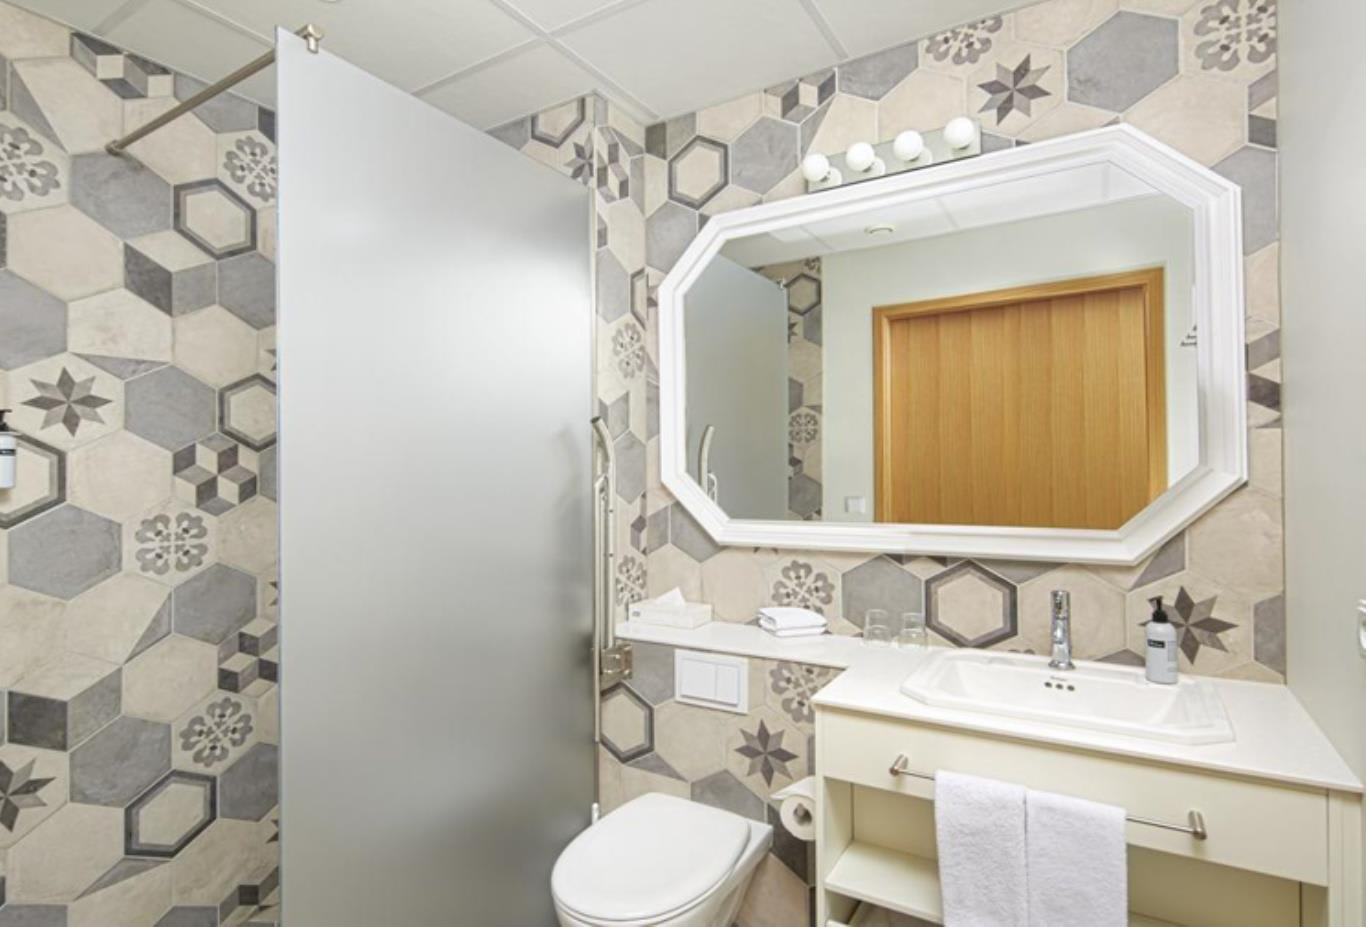 Deluxe Double or Twin Room bathroom